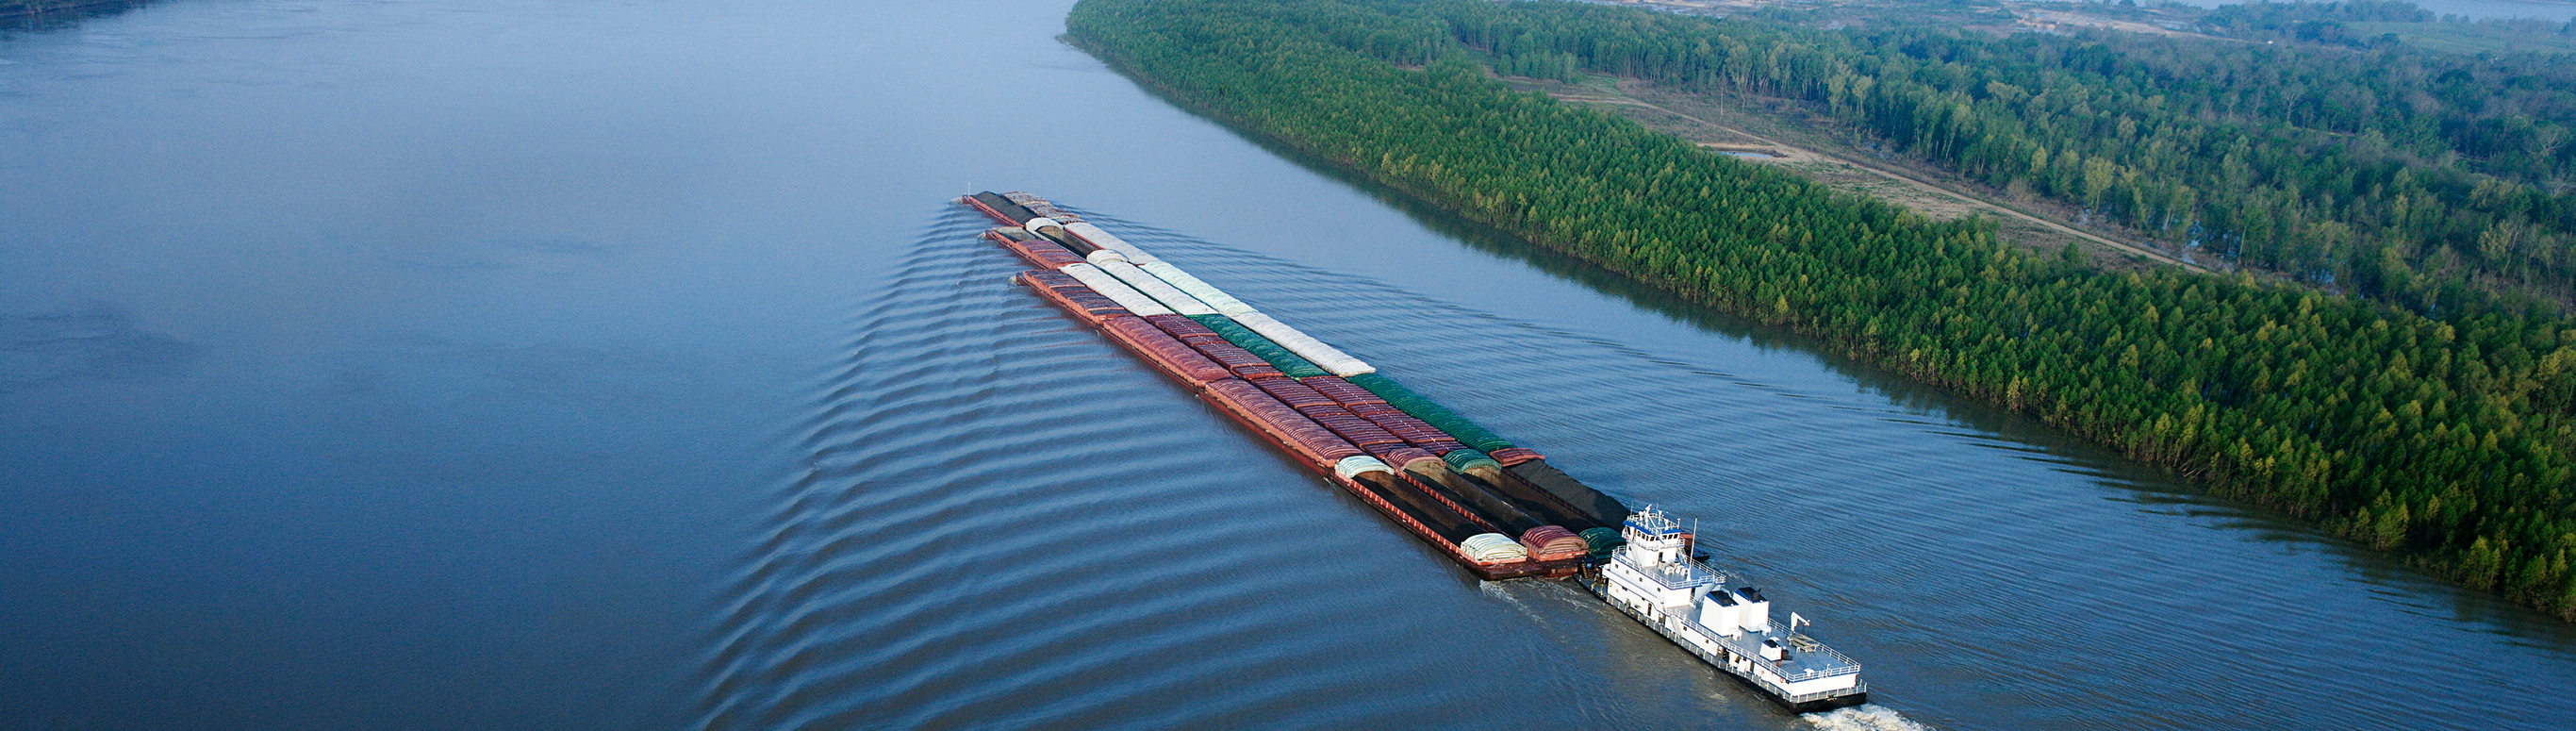 towboat pushing barge on Mississippi River near St. Louis